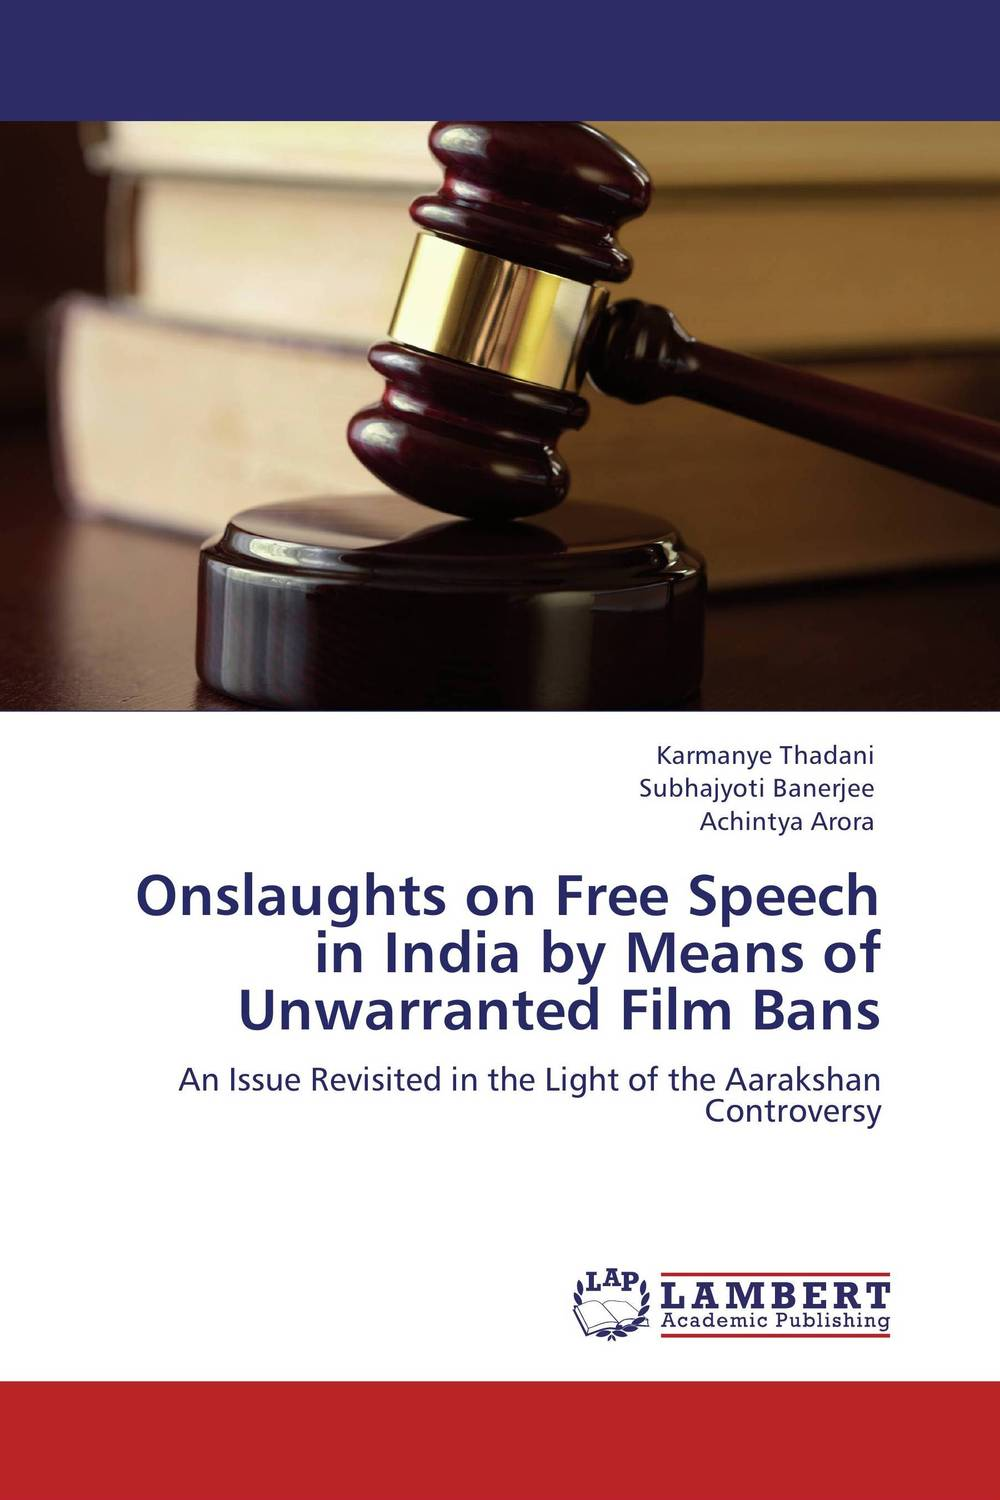 Onslaughts on Free Speech in India by Means of Unwarranted Film Bans lehiste bibliotheca phonetica some acoustic characteristics of dysarthric speech